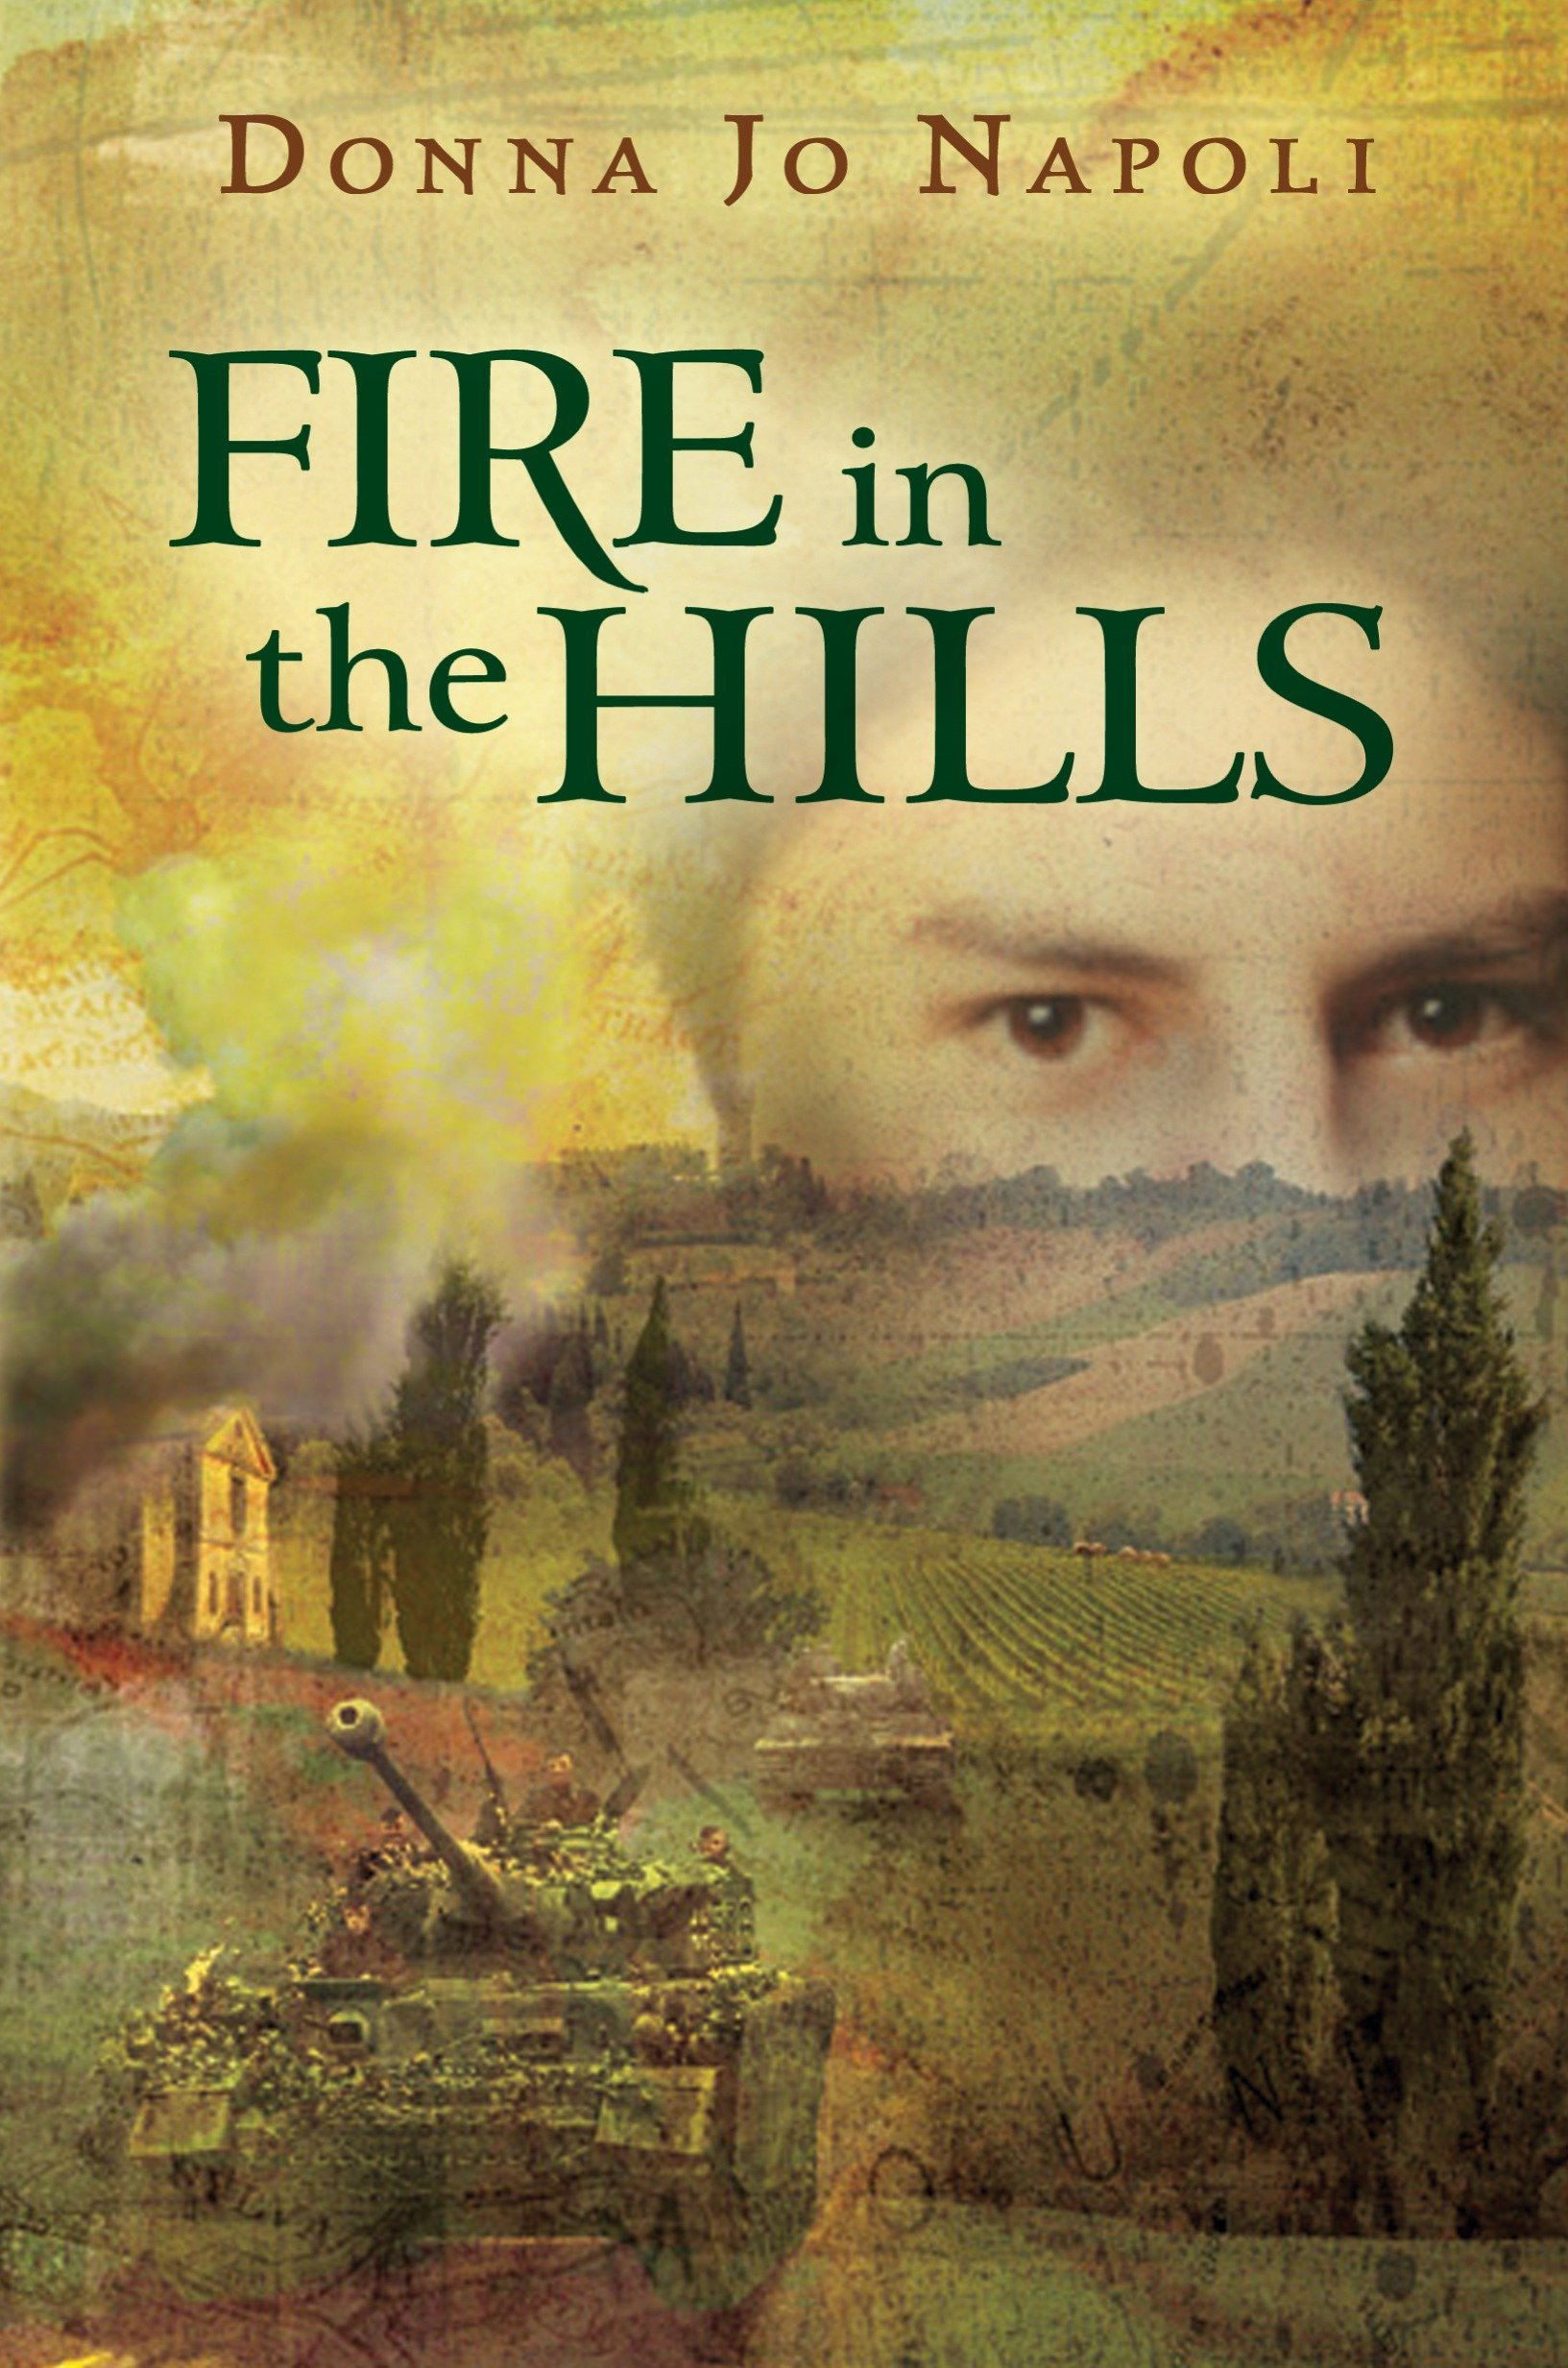 Fire in the Hills: Donna Jo Napoli: 9780142412008: Amazon.com: Books